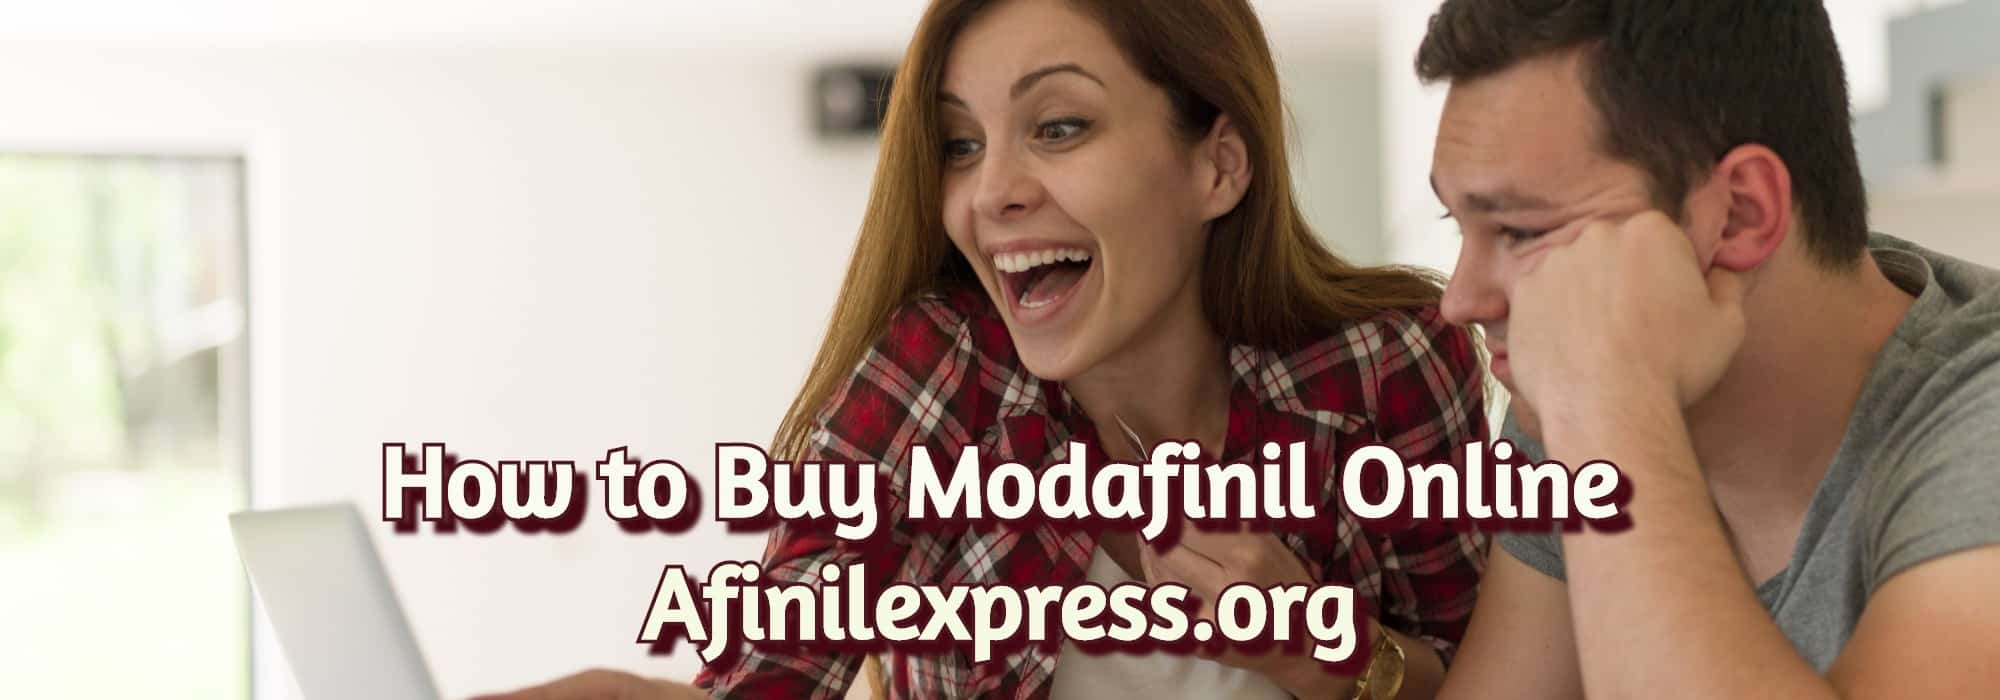 How to Buy Modafinil Online.